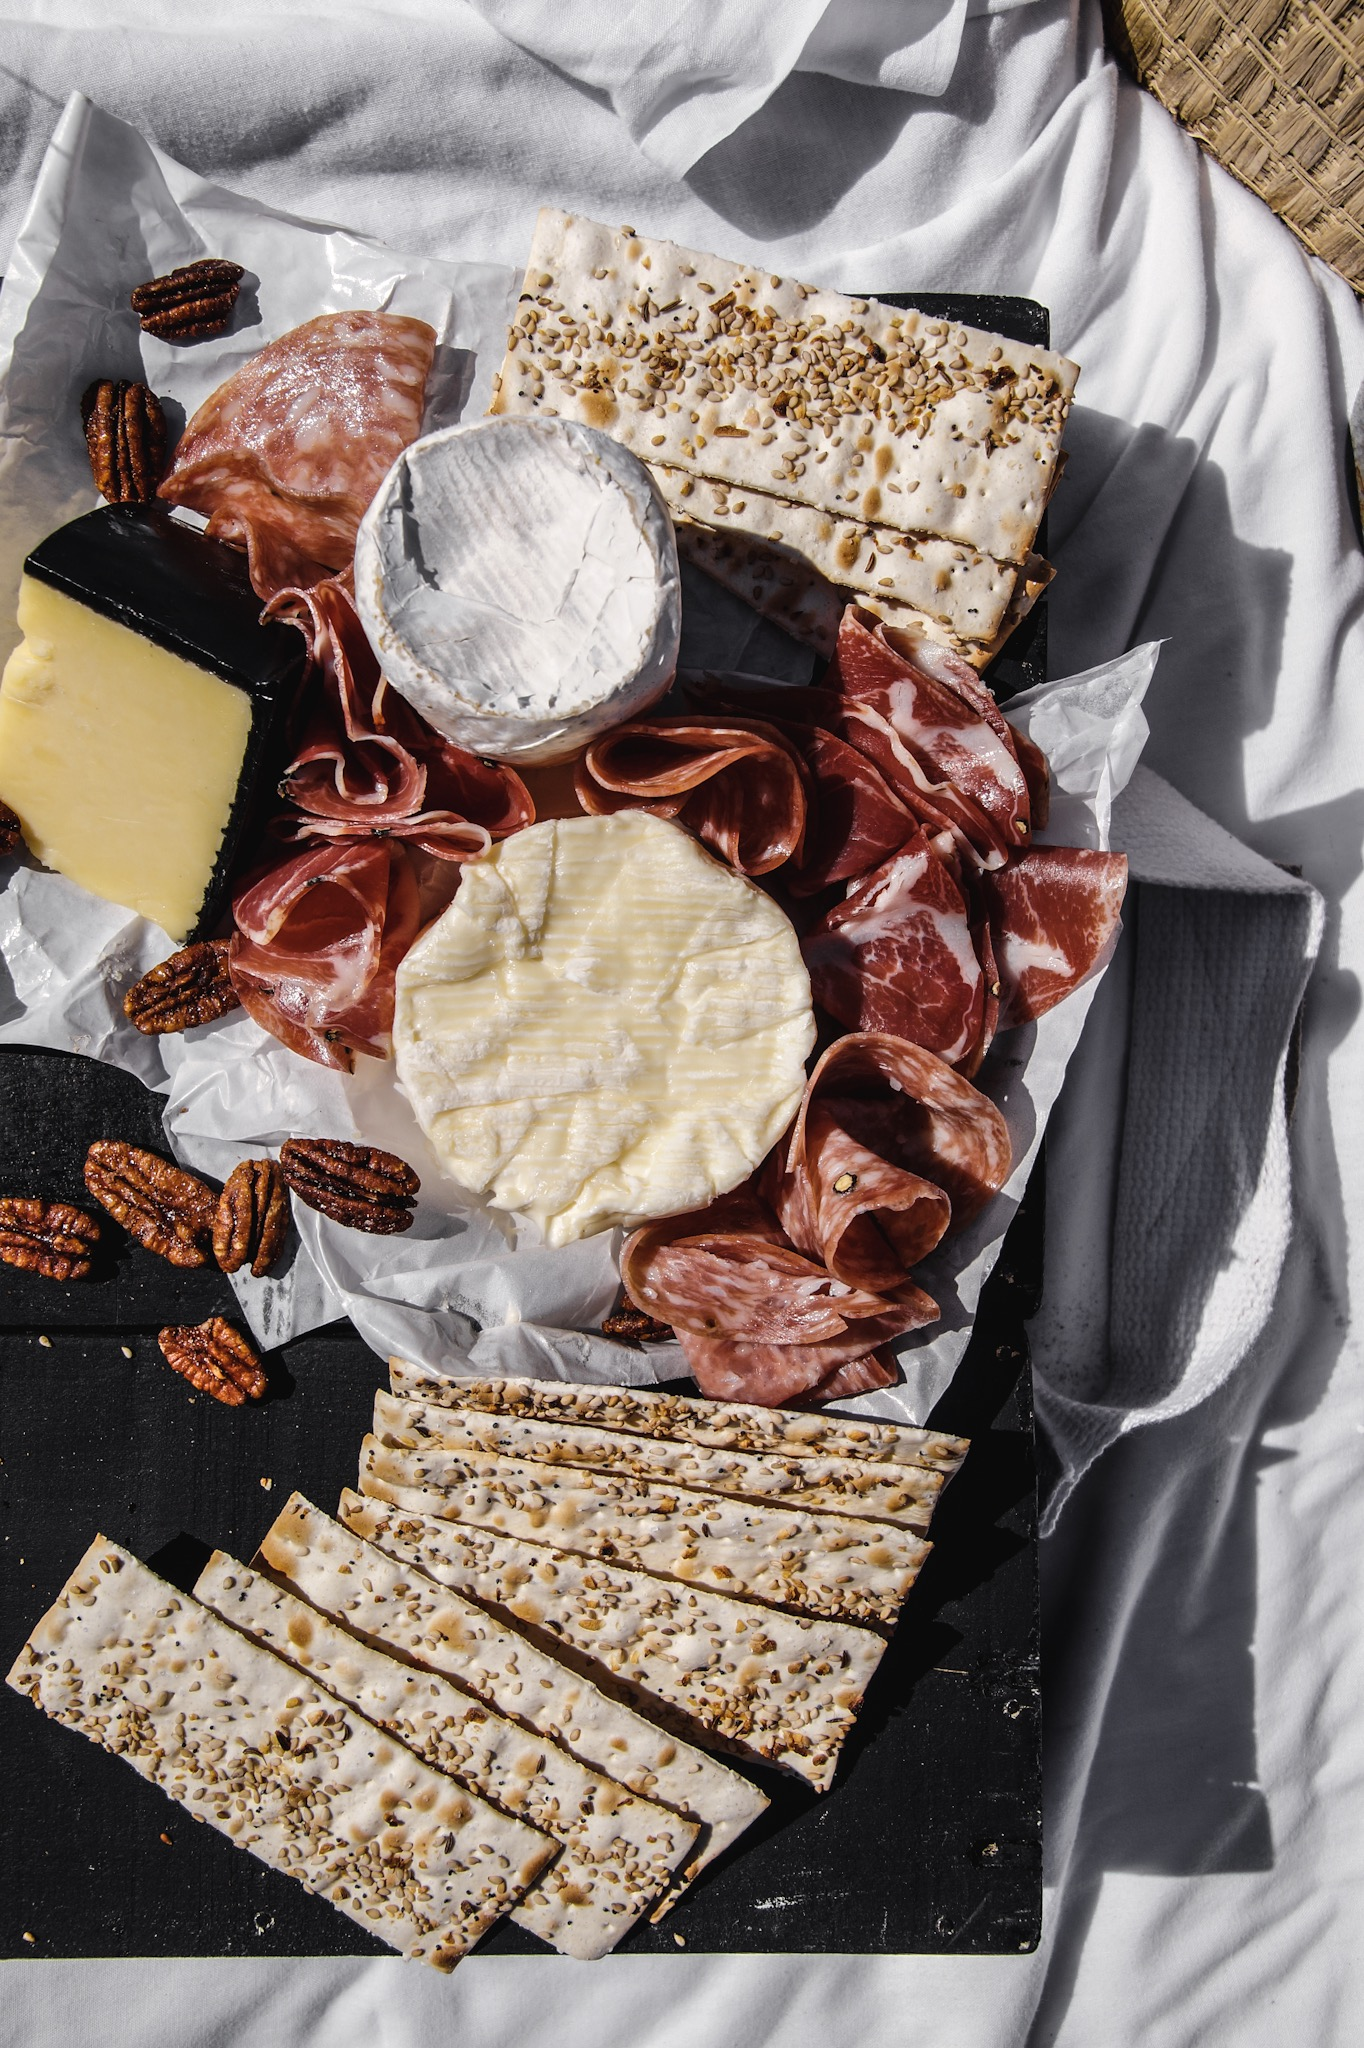 8 tips tricks and ideas to create an amazing summer picnic. 4. Charcuterie is king.